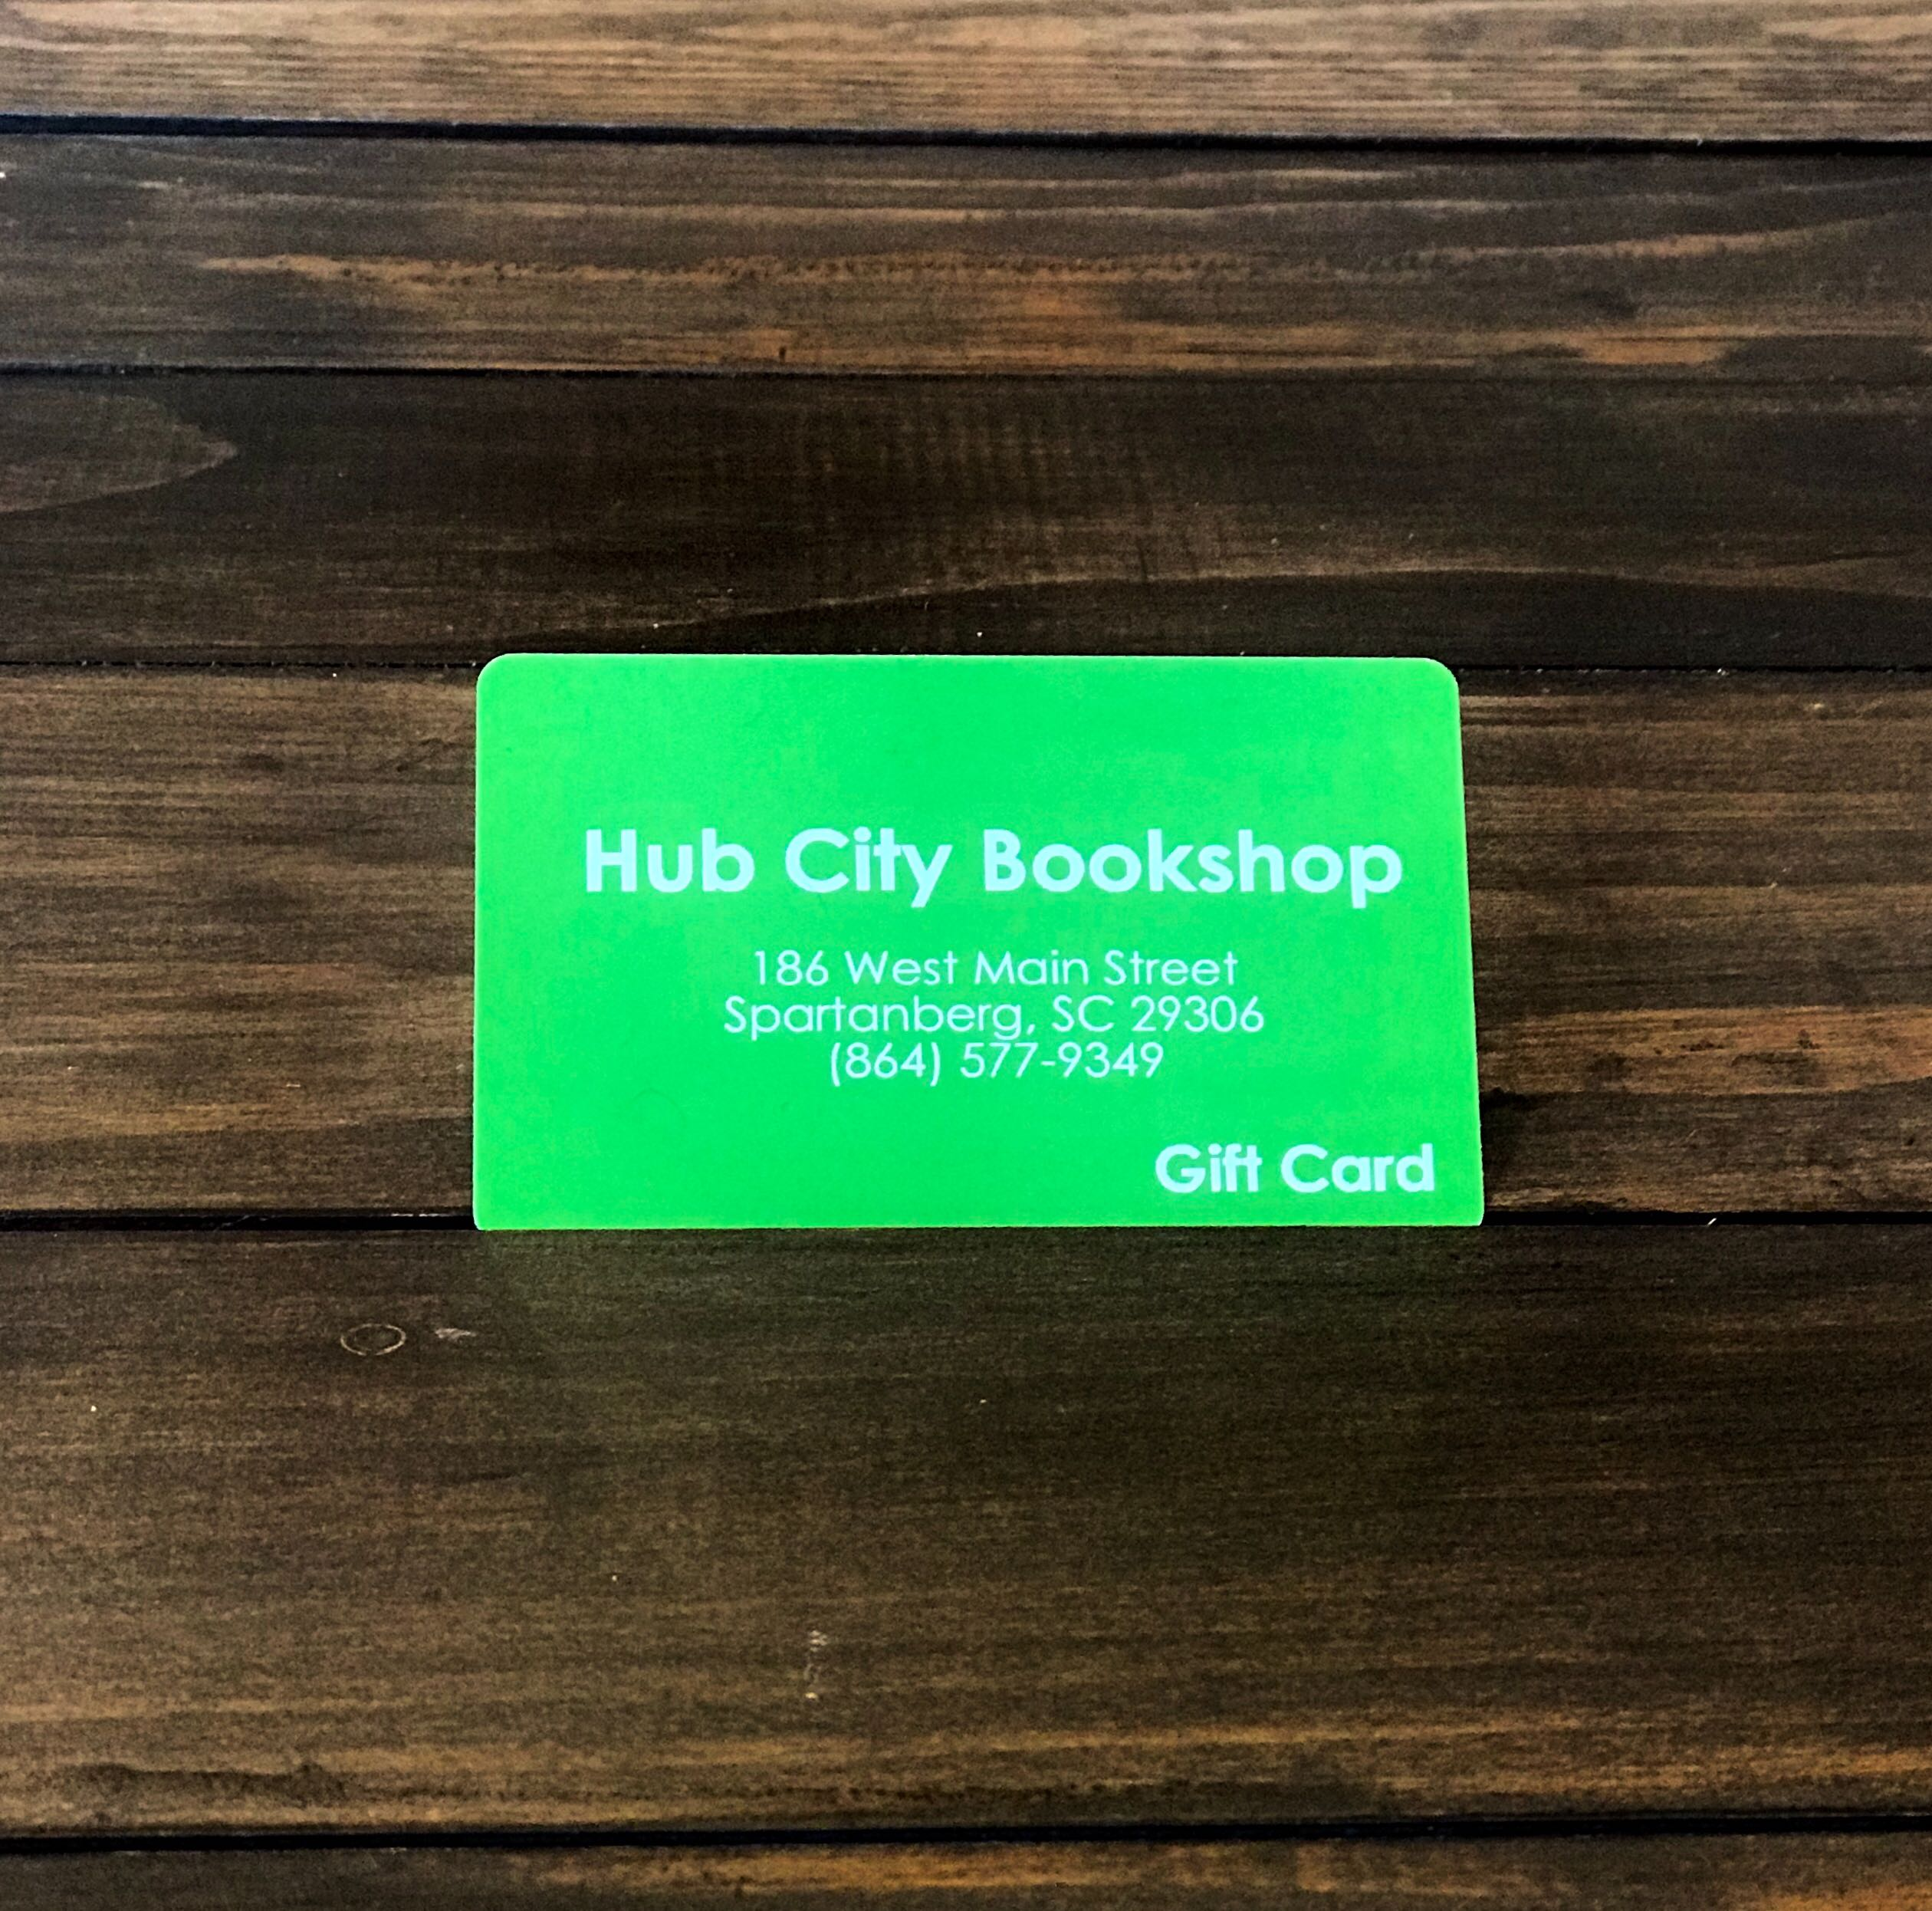 Hub City Bookshop Giftcard